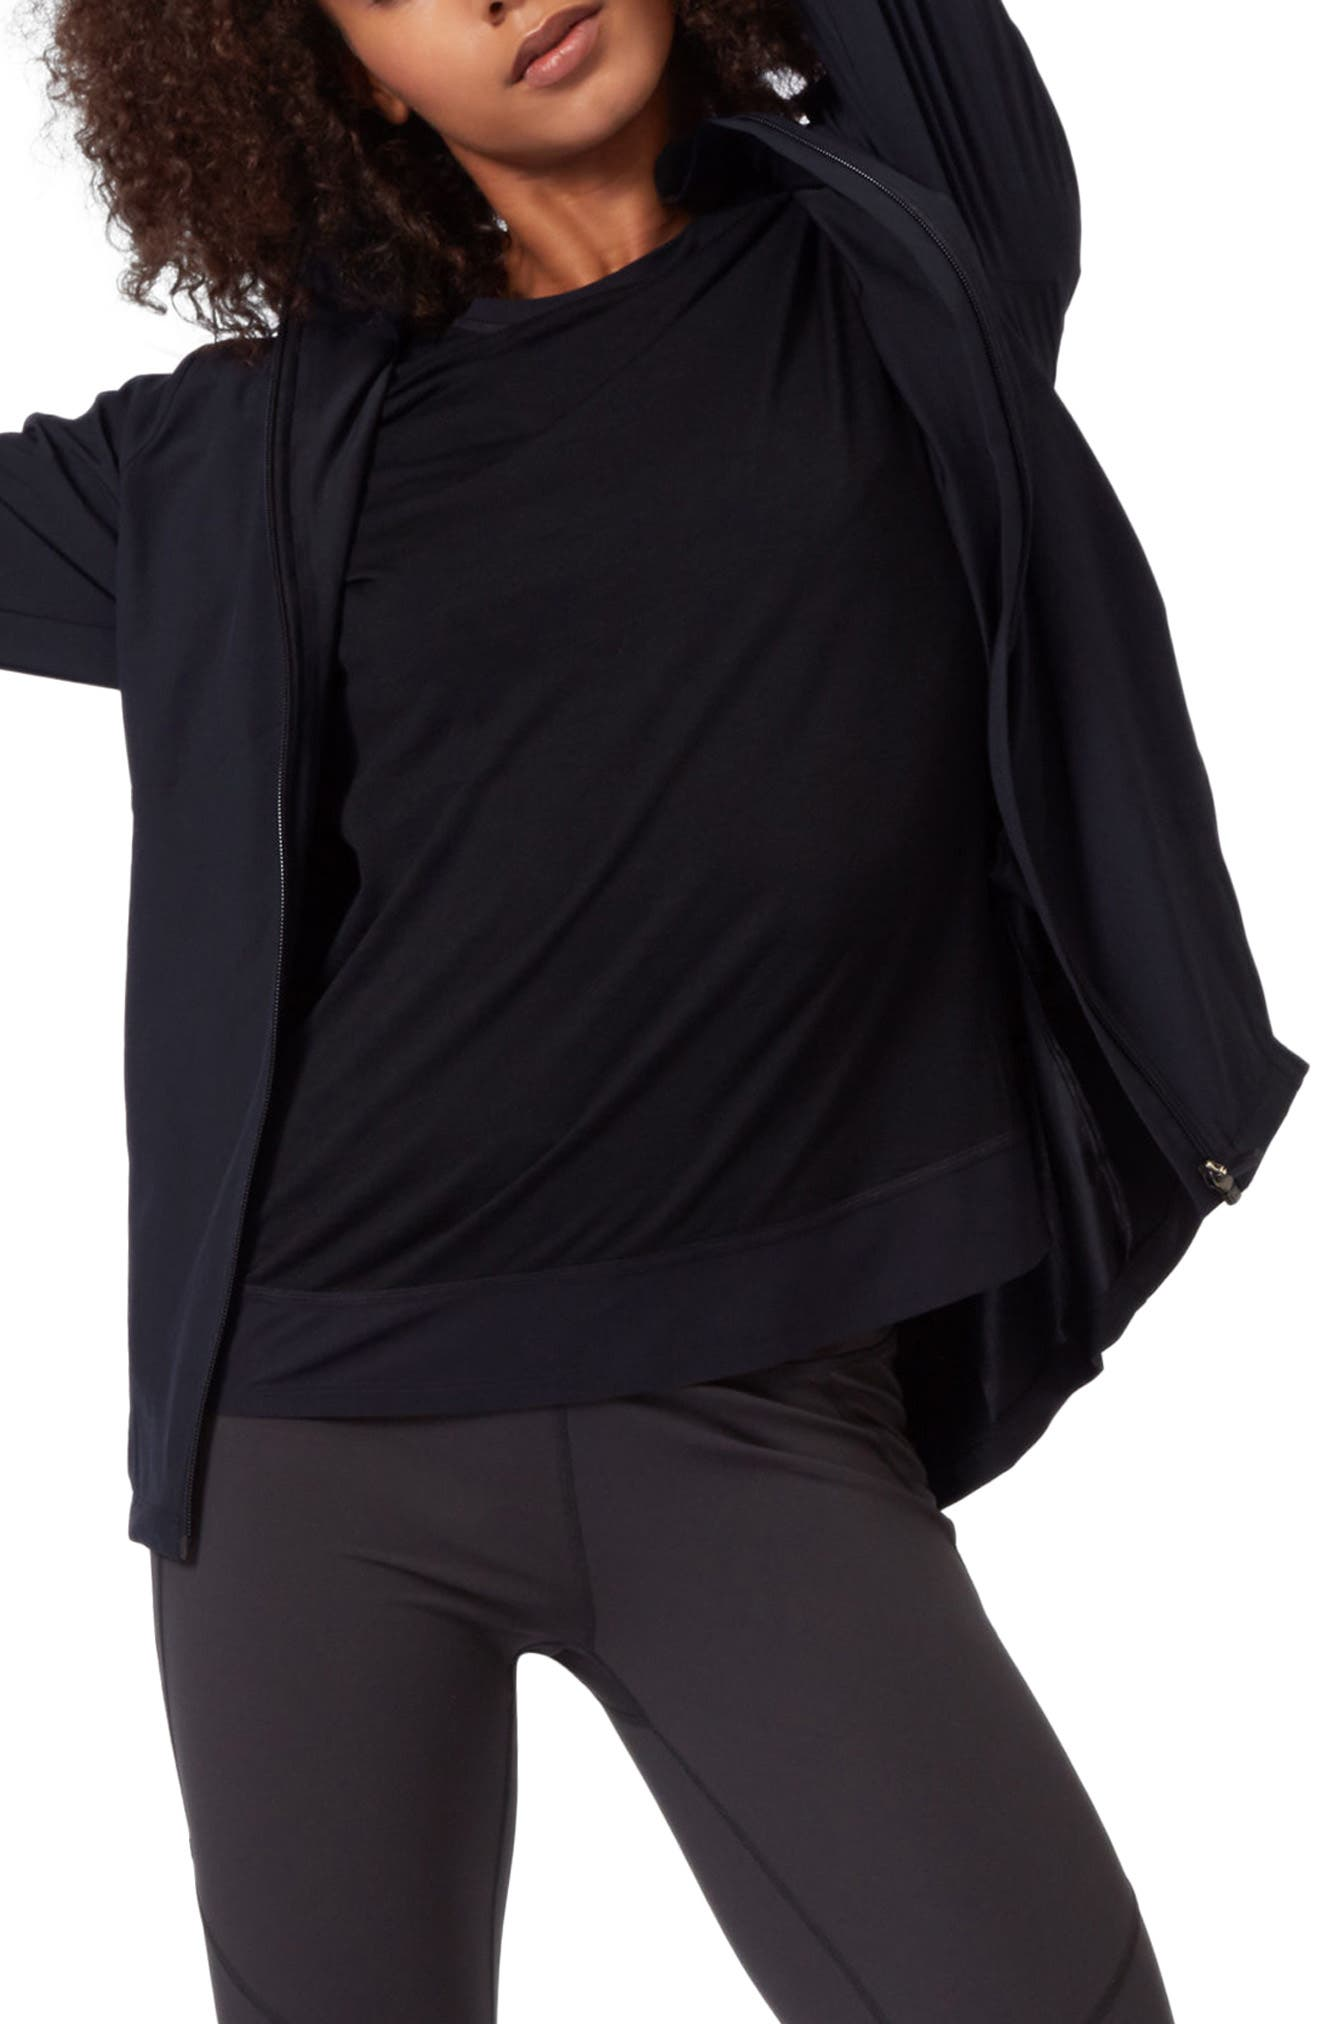 Fast Track Jacket by Sweaty Betty